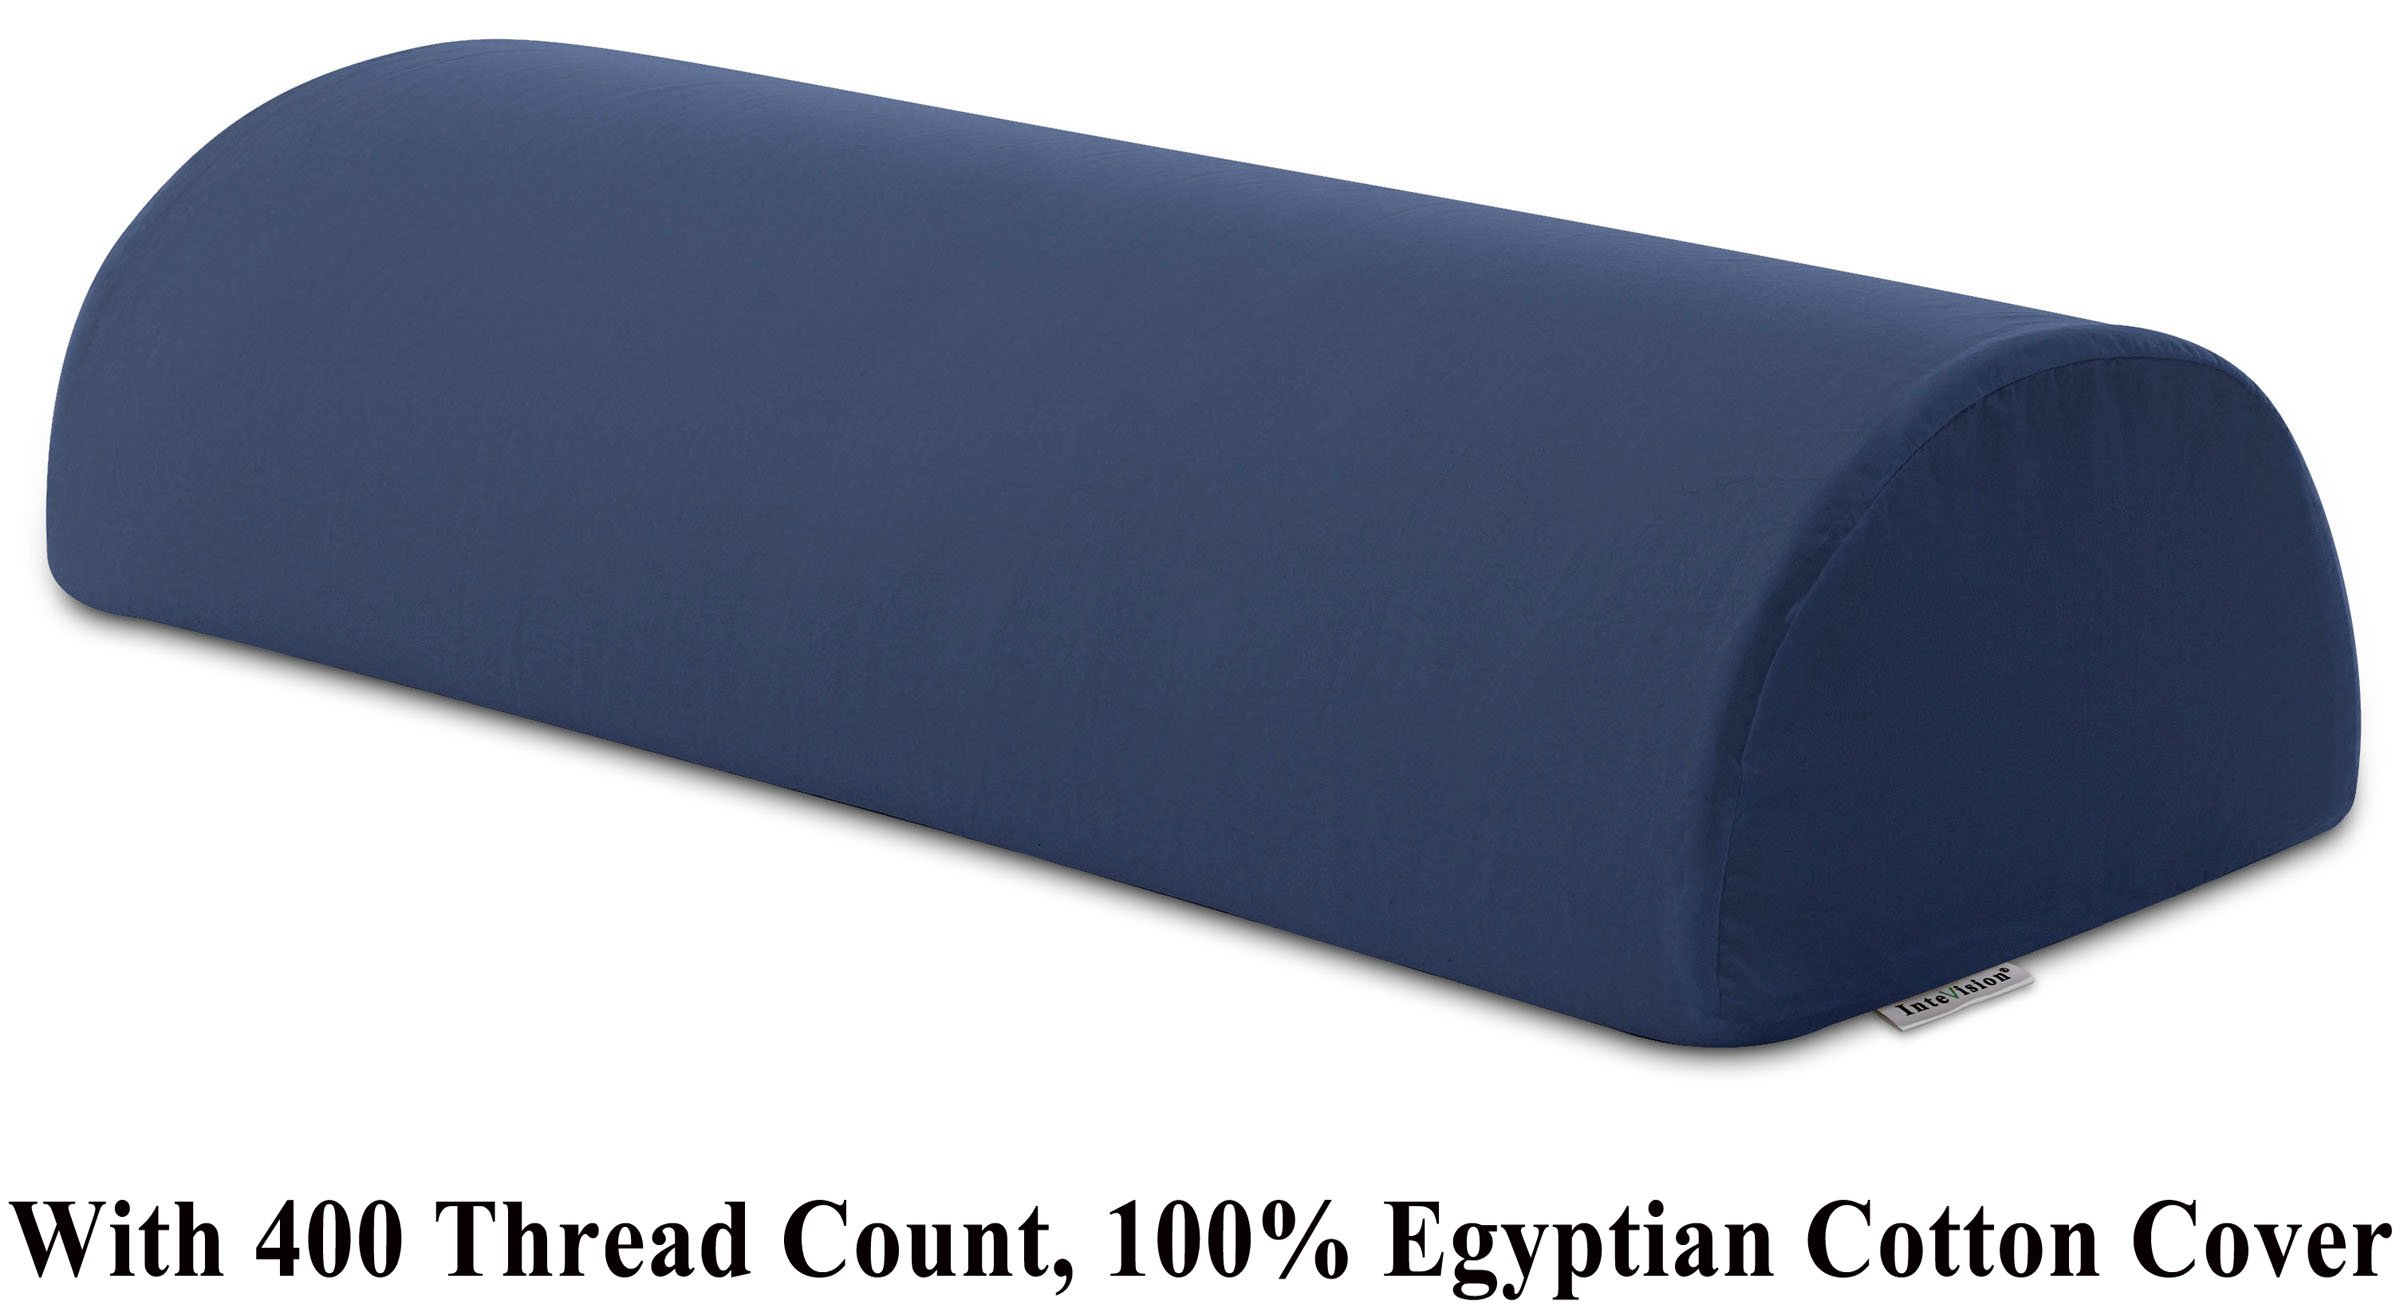 InteVision Four Position Support Pillow (20.5'' x 8'' x 4.5'') with, 400 Thread Count, 100% Egyptian Cotton Cover by InteVision